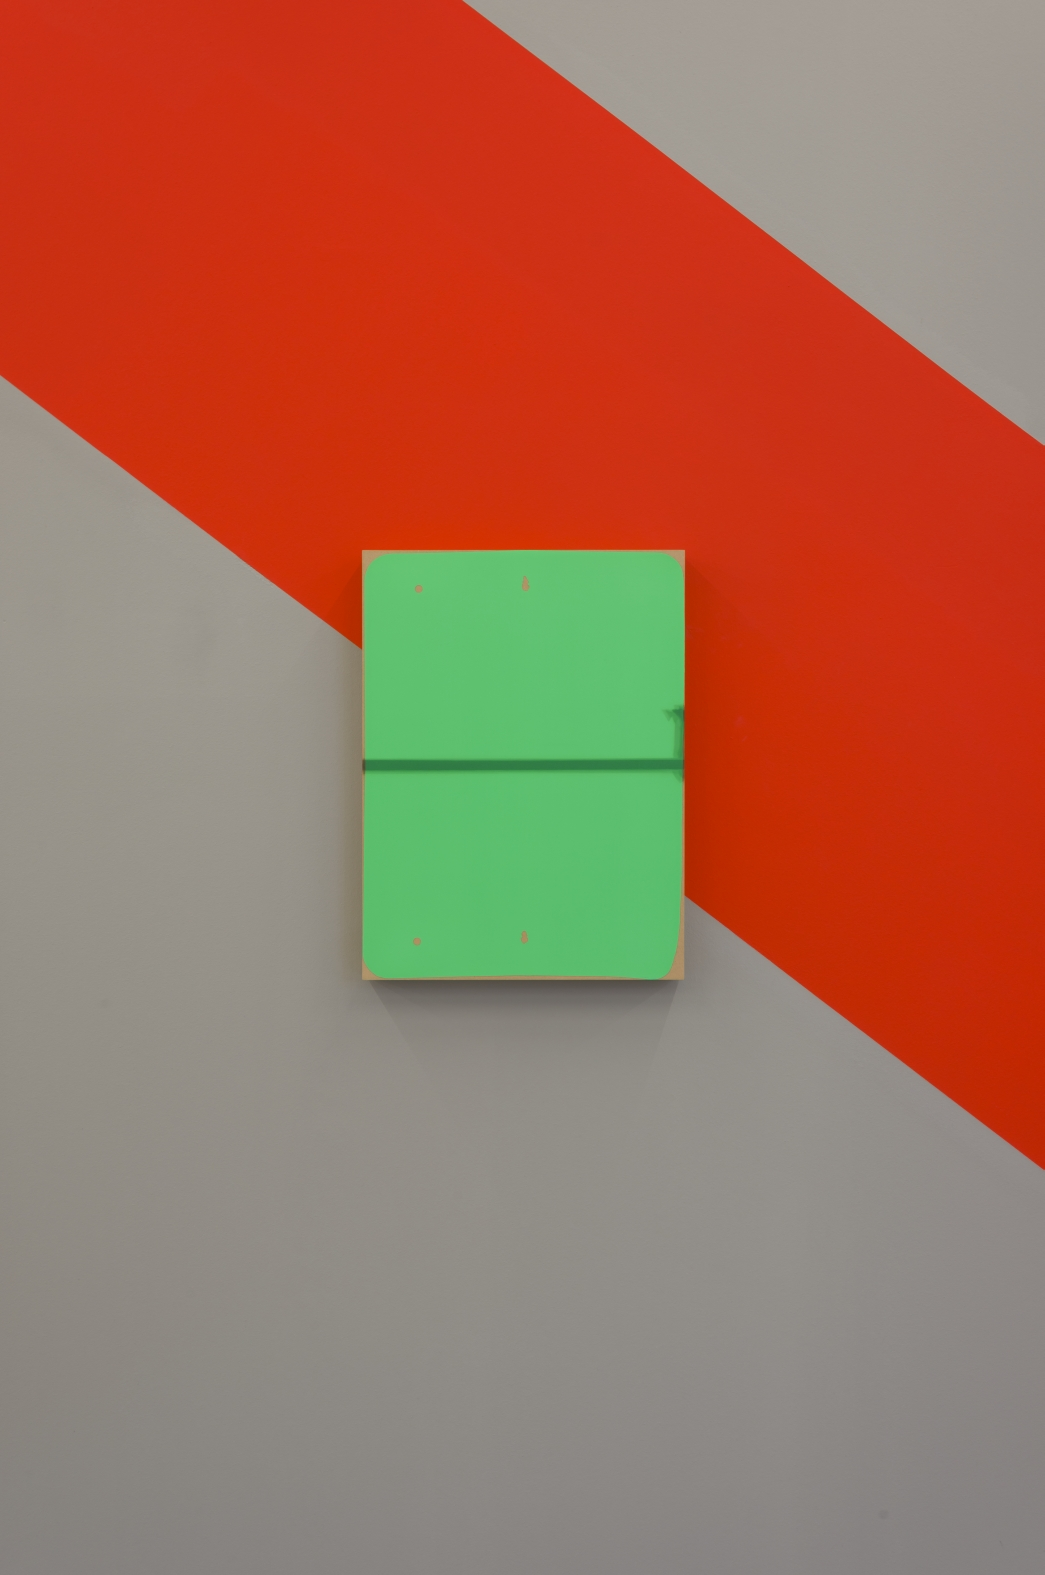 The Signifier (Right) ,2013 mural with panel: Ultra-Matte Video Green Acrylic, Oil on MRMDF, dimensions variable